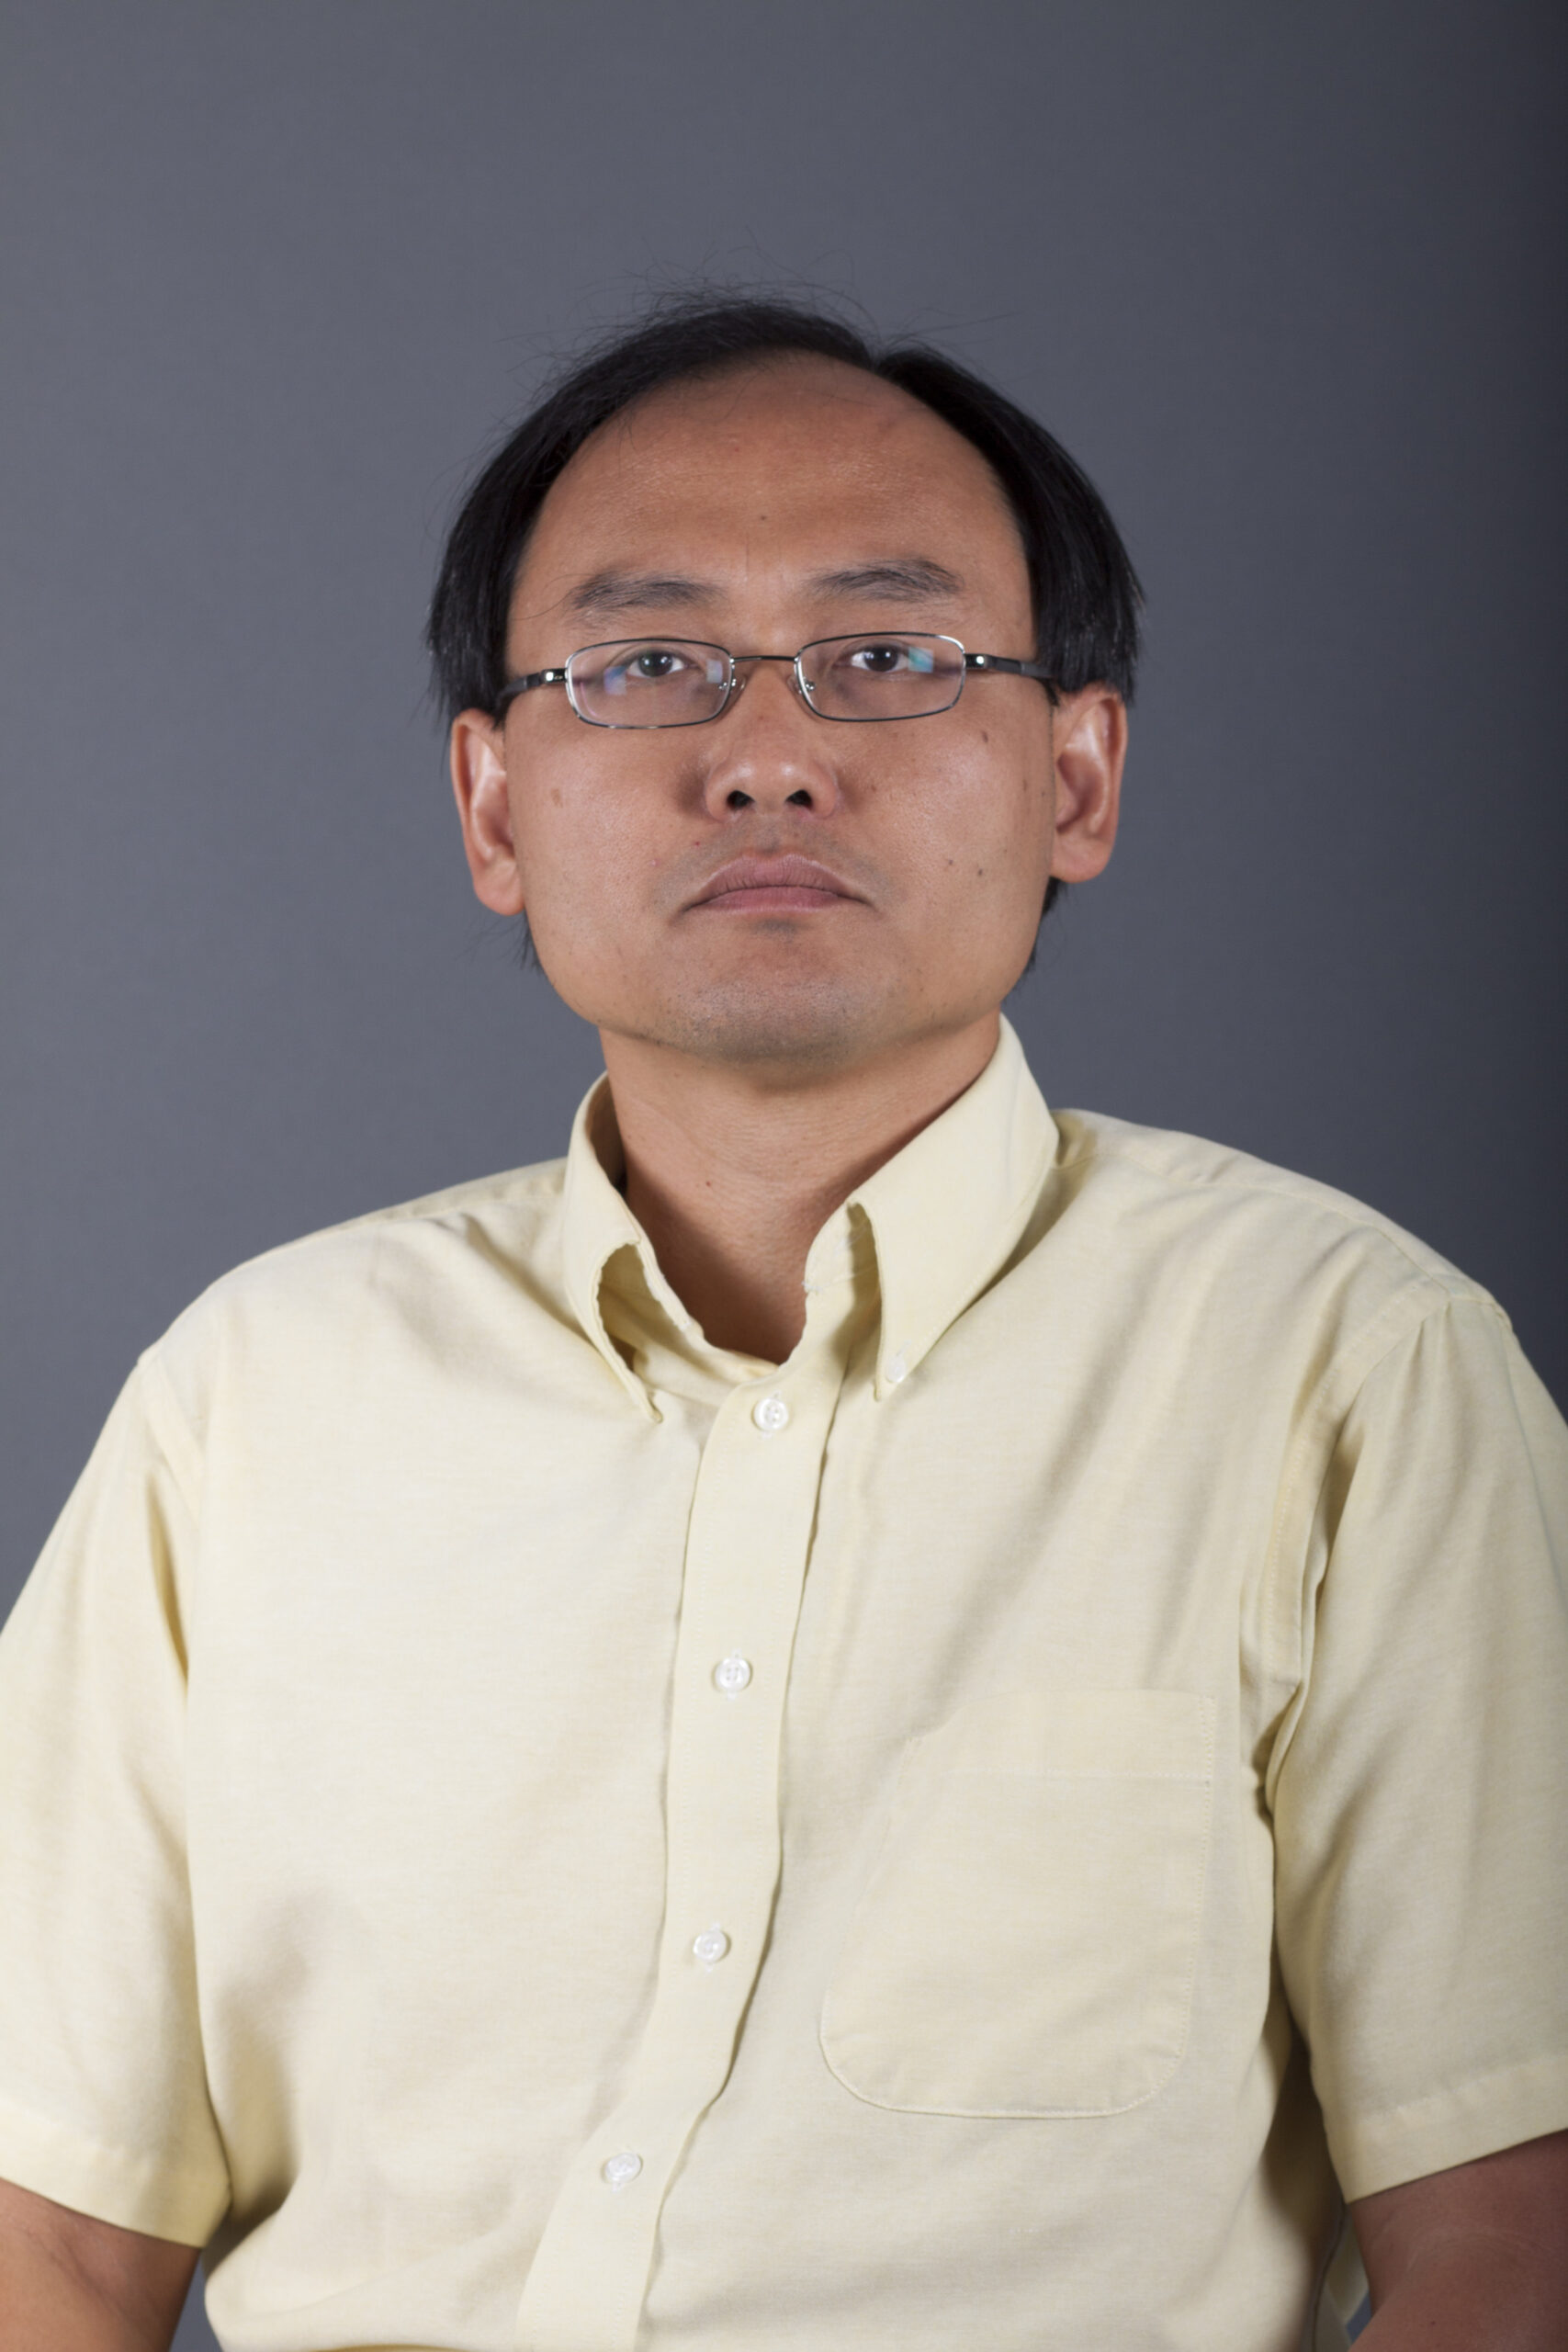 Associate Professor of Computer Science Dr. Yihsiang Liow